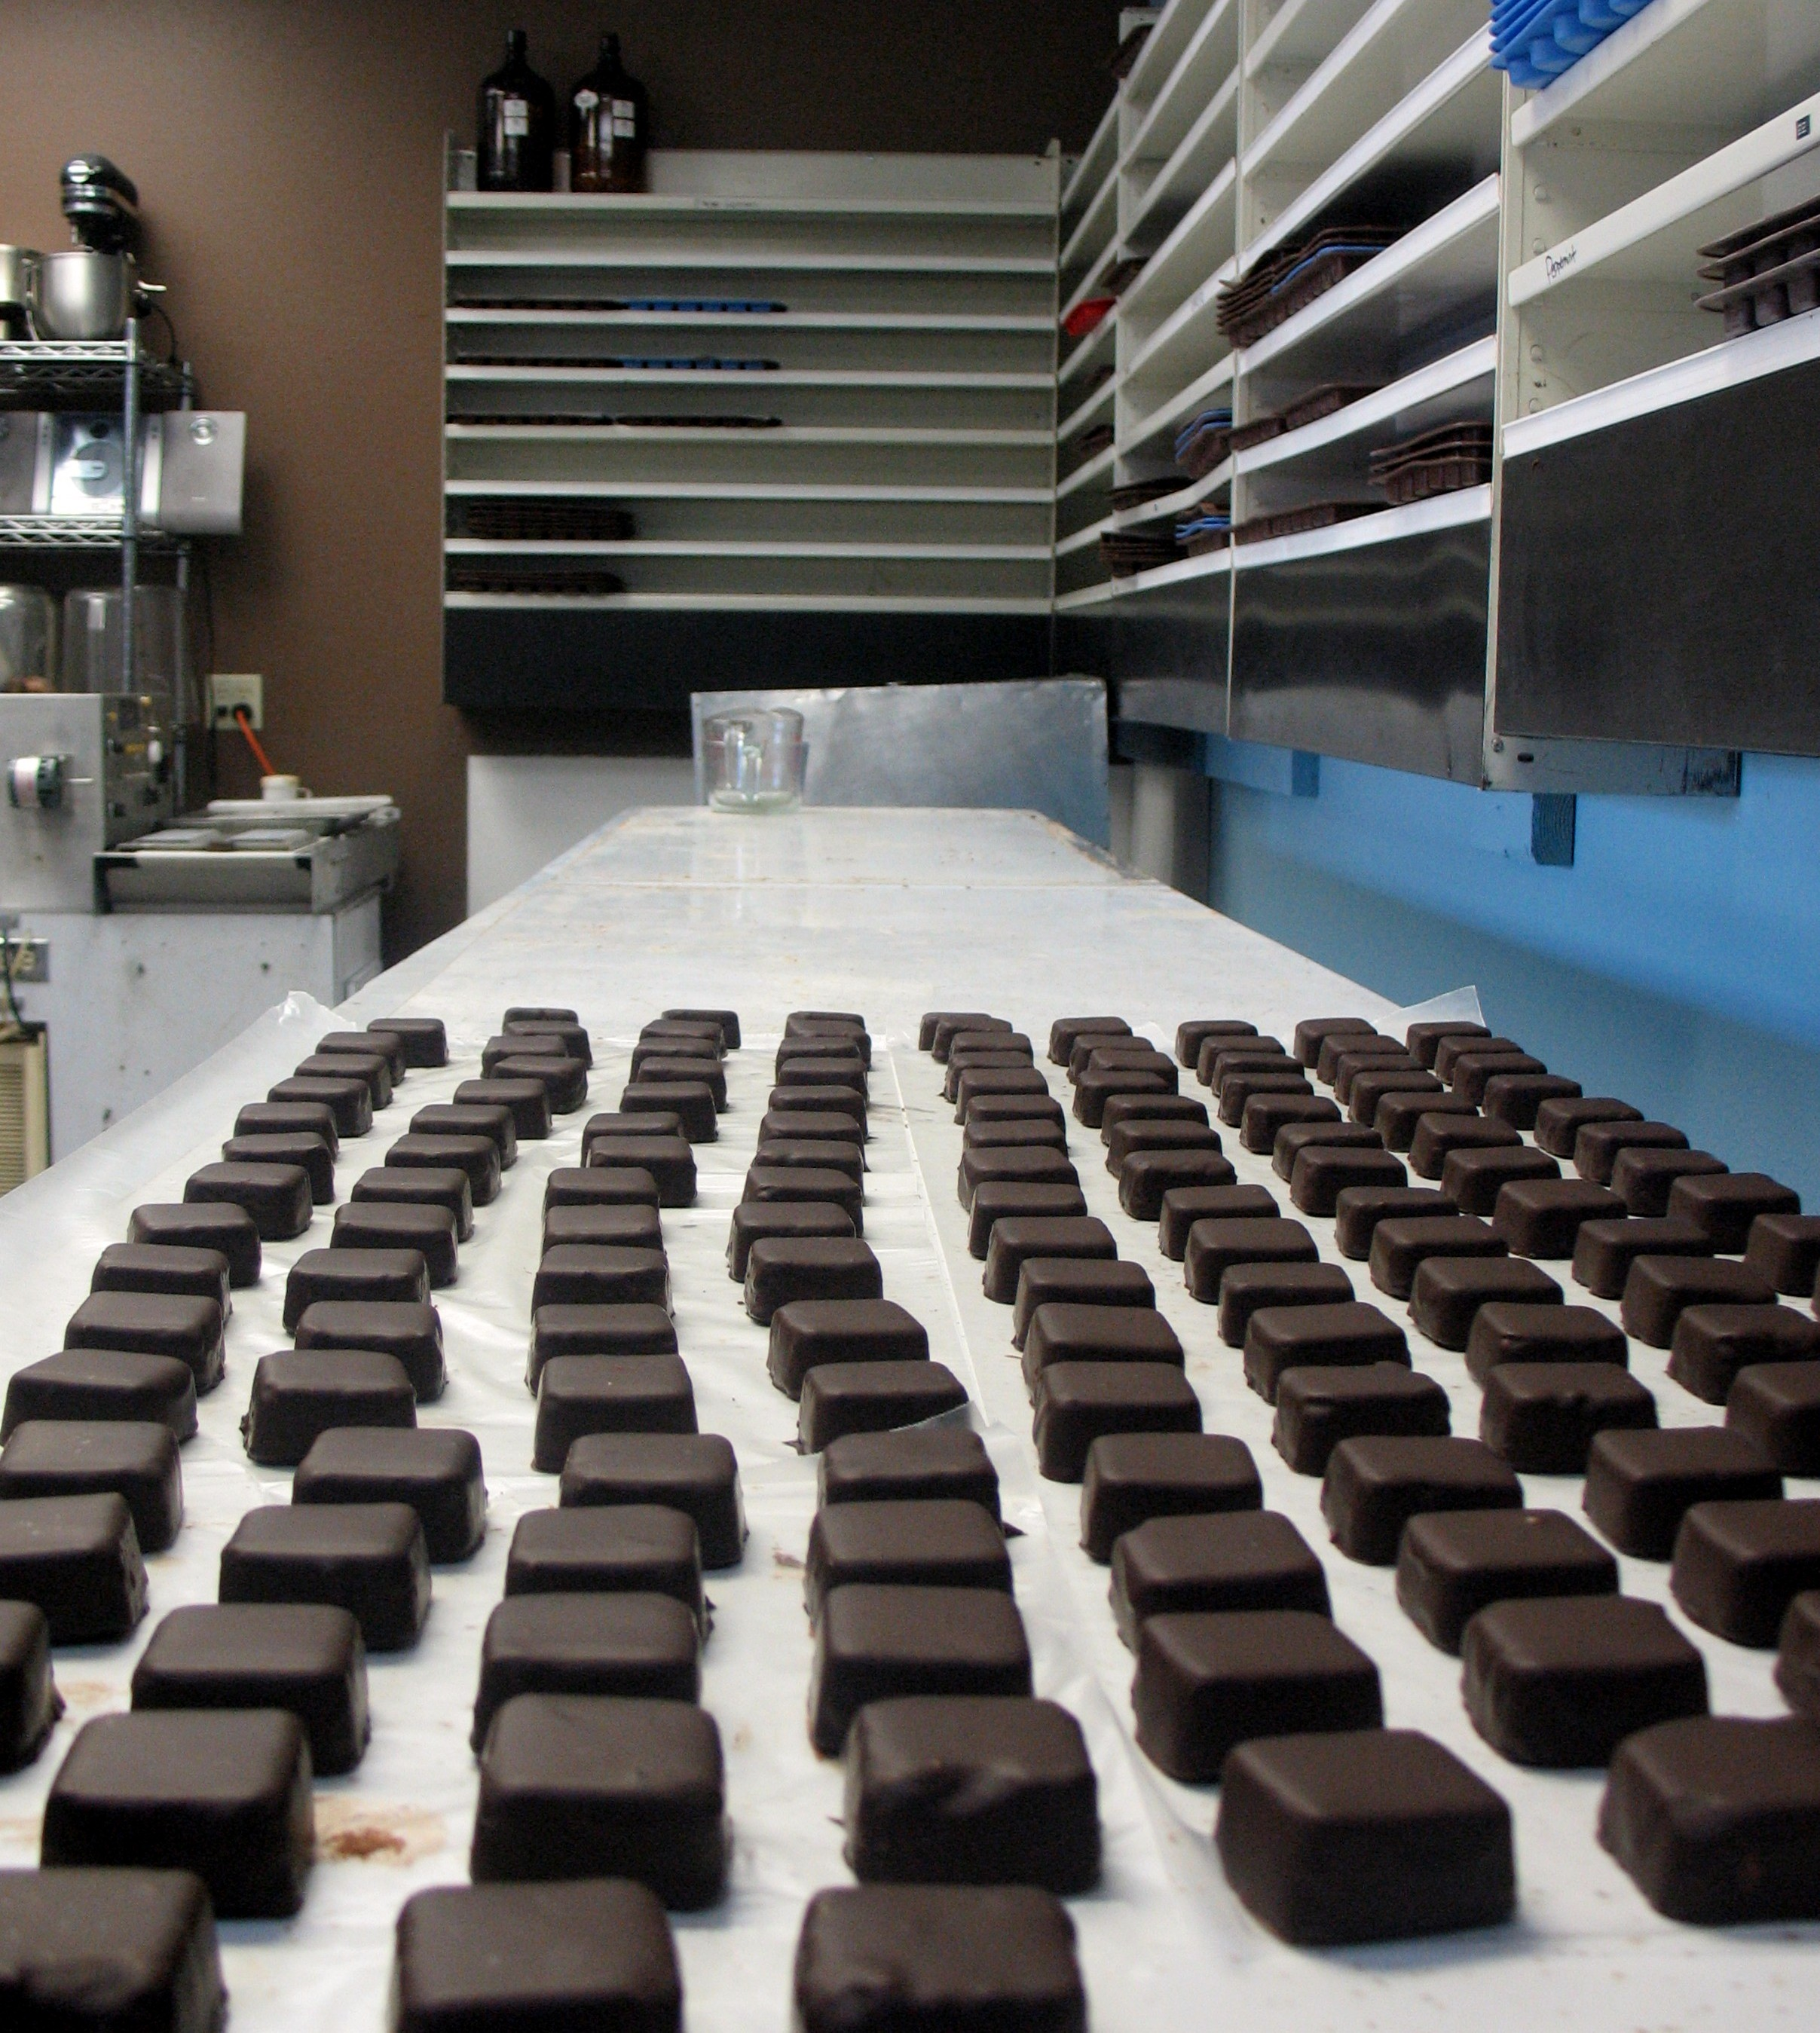 Missionary Chocolates production line